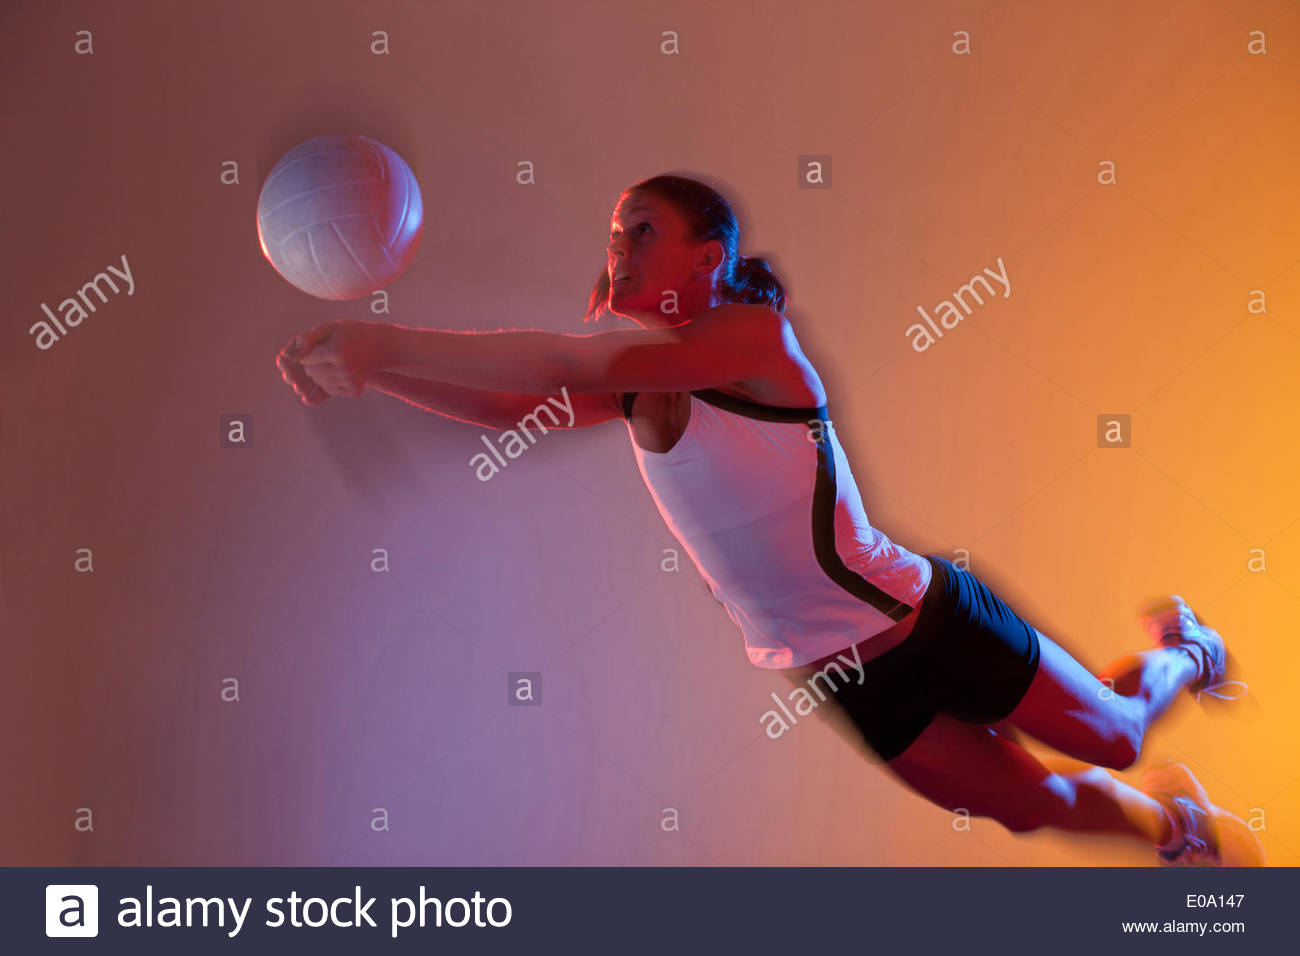 Volleyball player - Stock Image